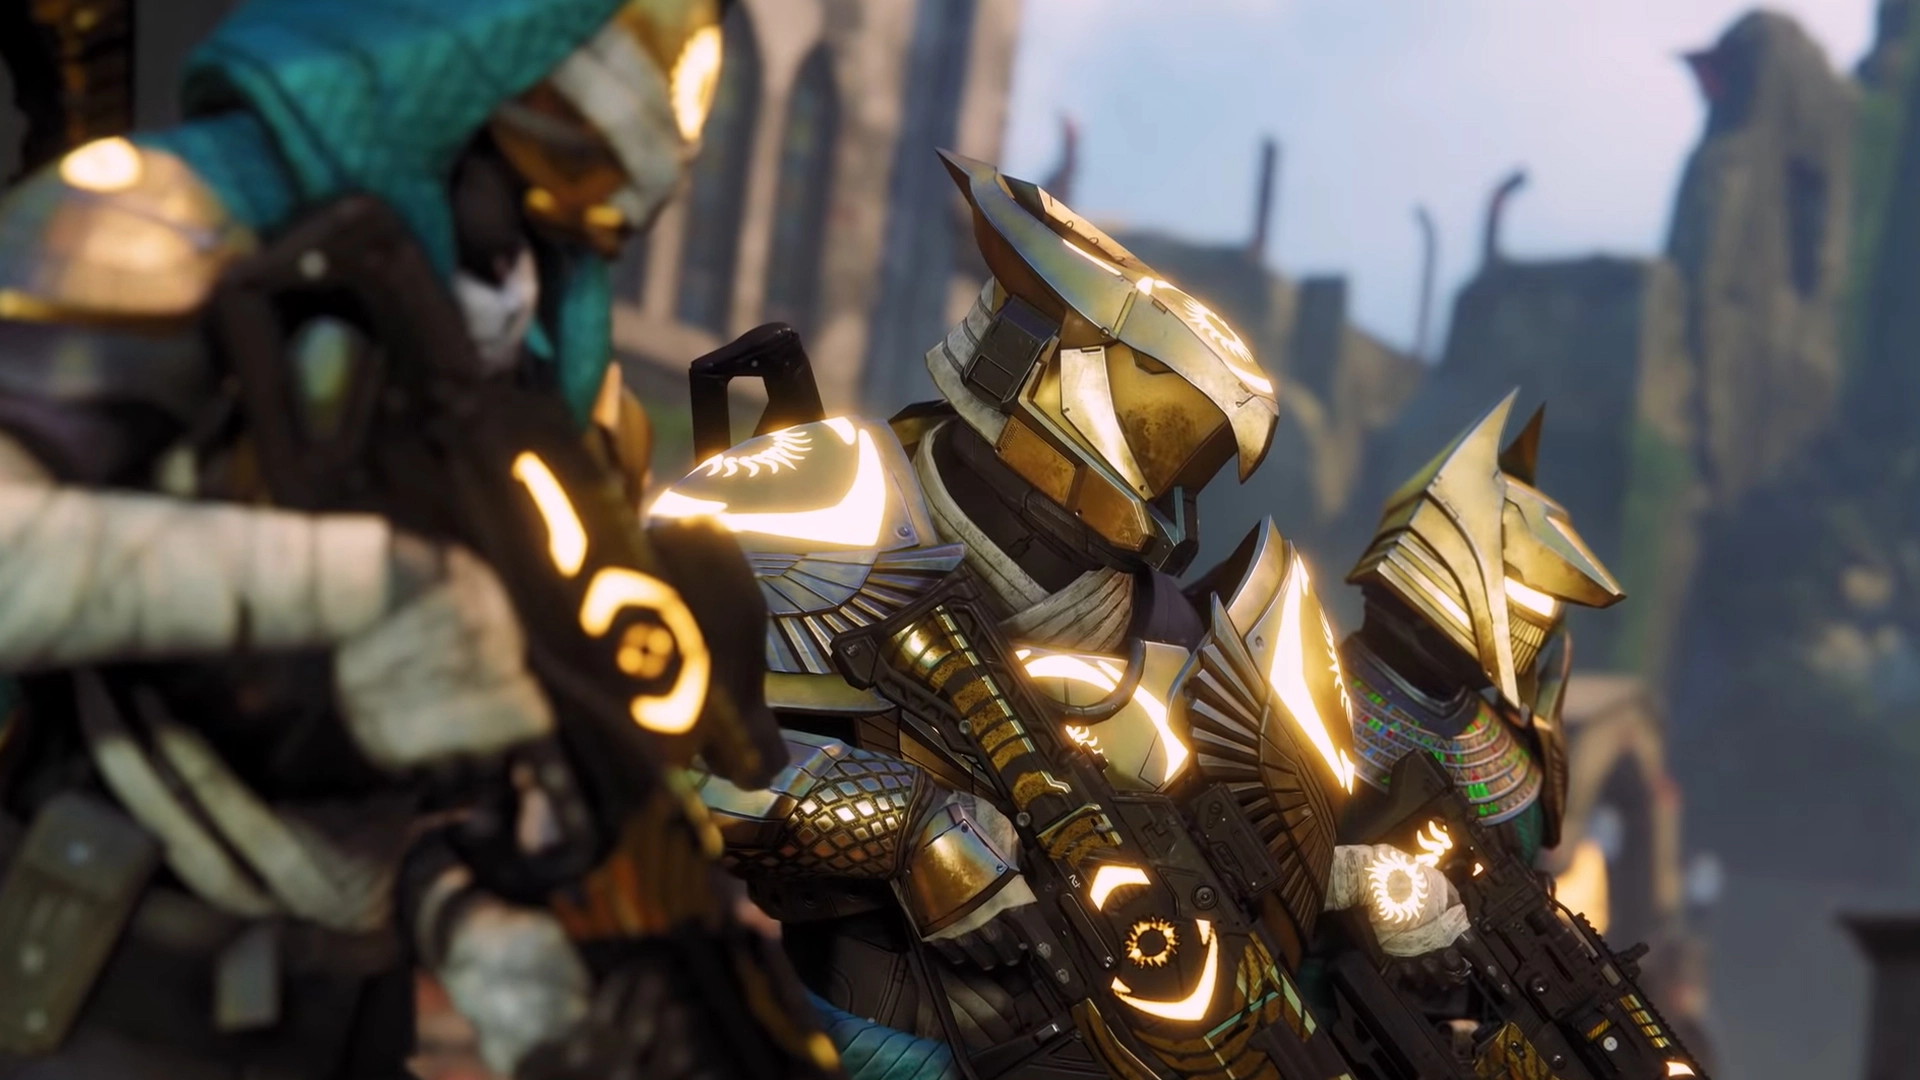 Destiny's ultra-competitive Trials of Osiris may finally be free of the Hard Light after update 2.8.1.1.